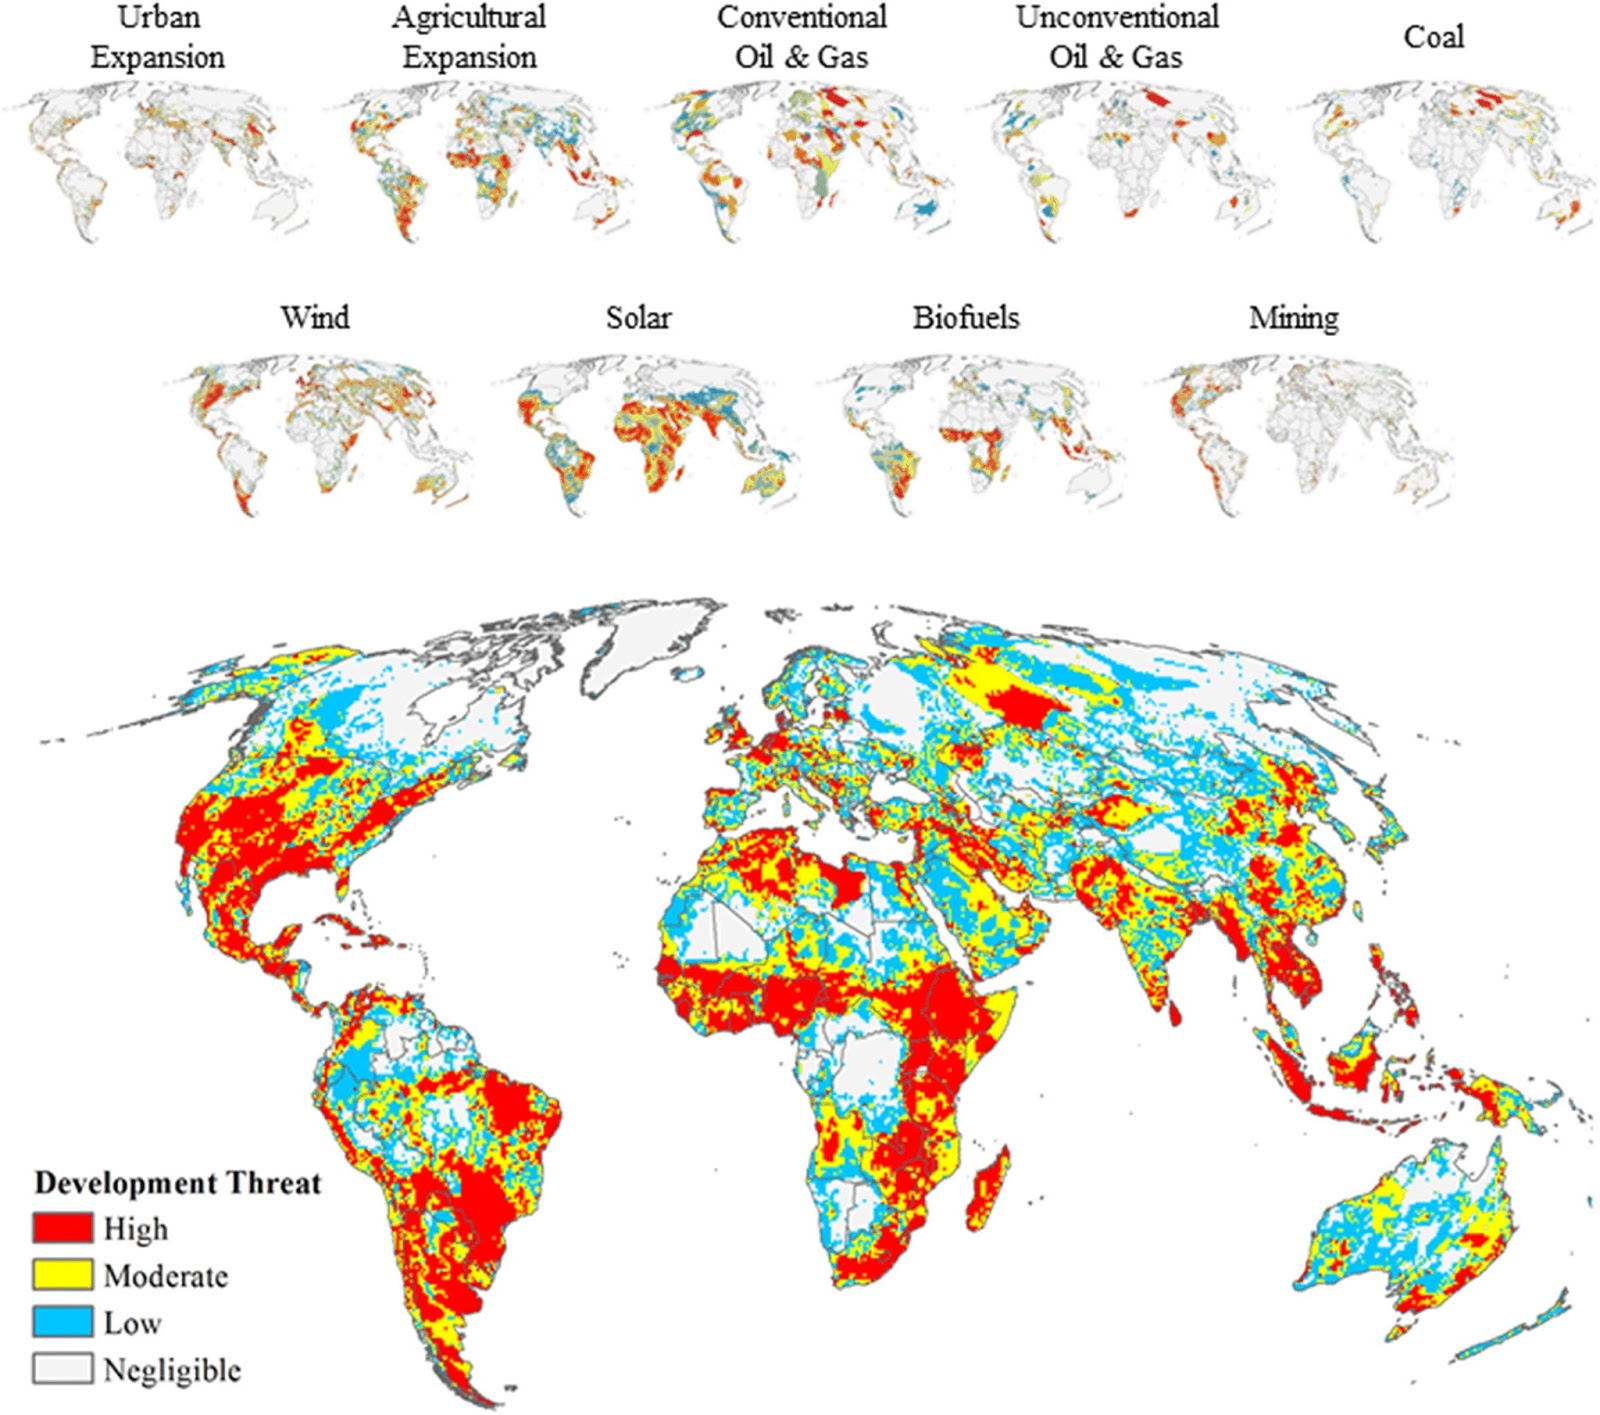 A World at Risk: Aggregating Development Trends to Forecast Global Habitat Conversion